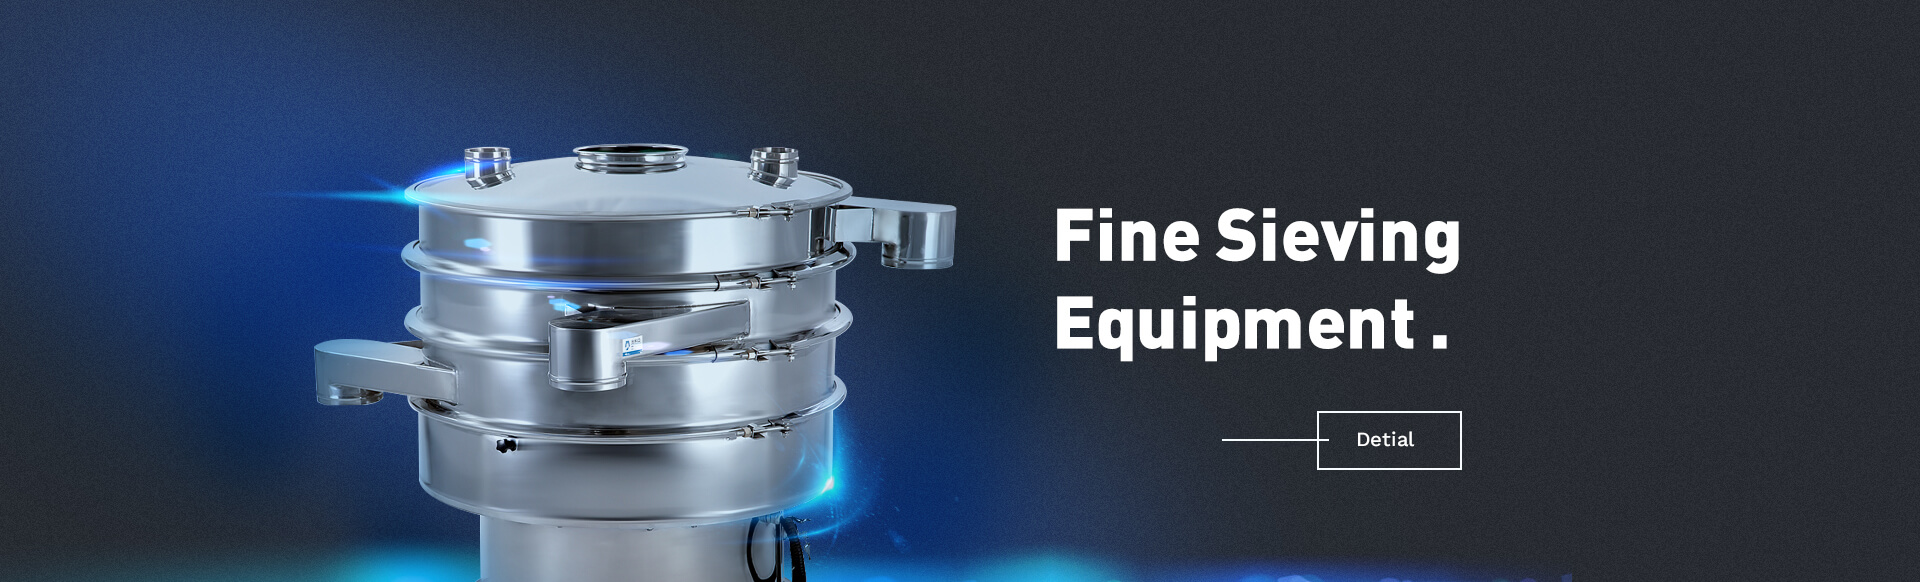 Fine sieving equipment - Gaofu Sieving